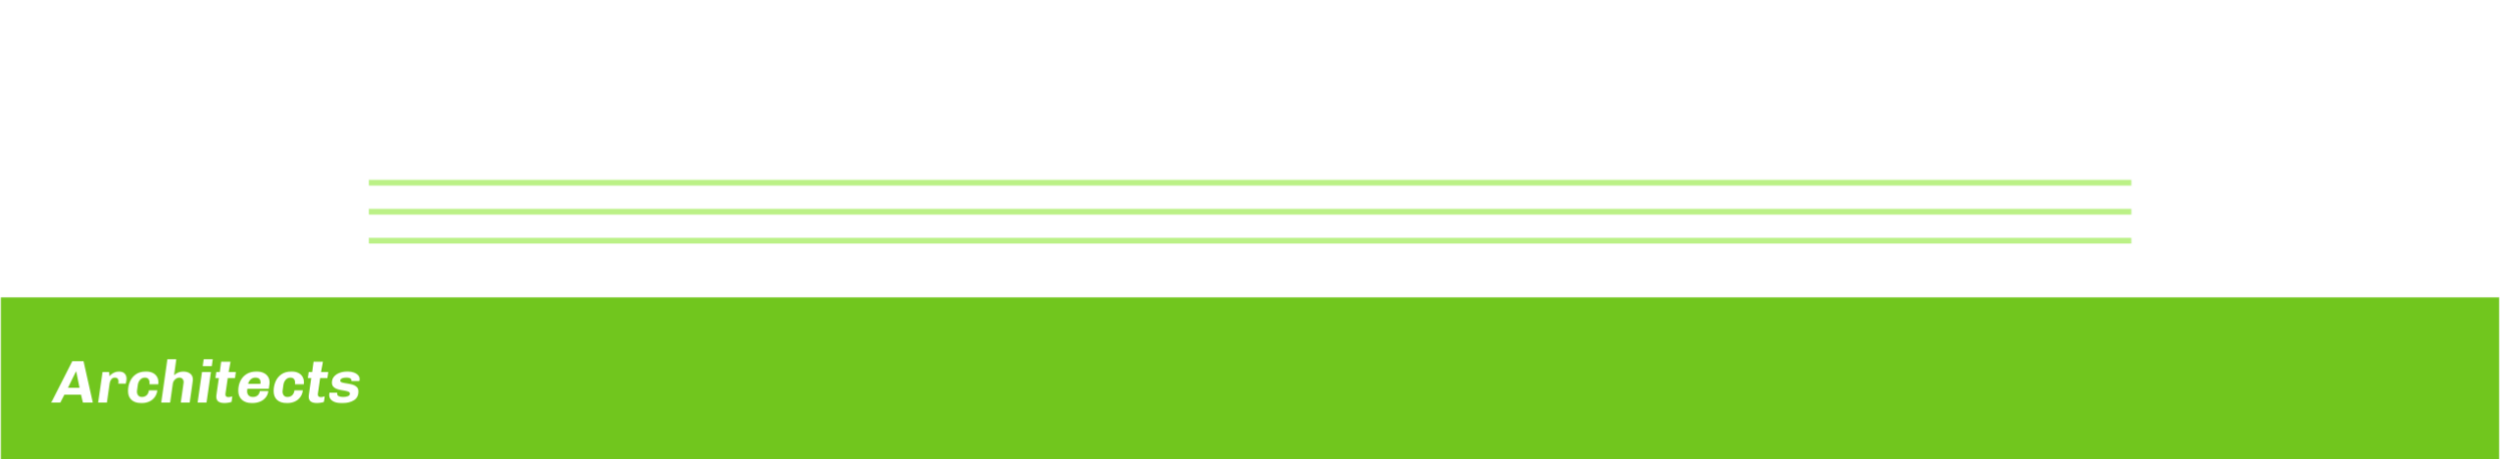 Resources-1.png